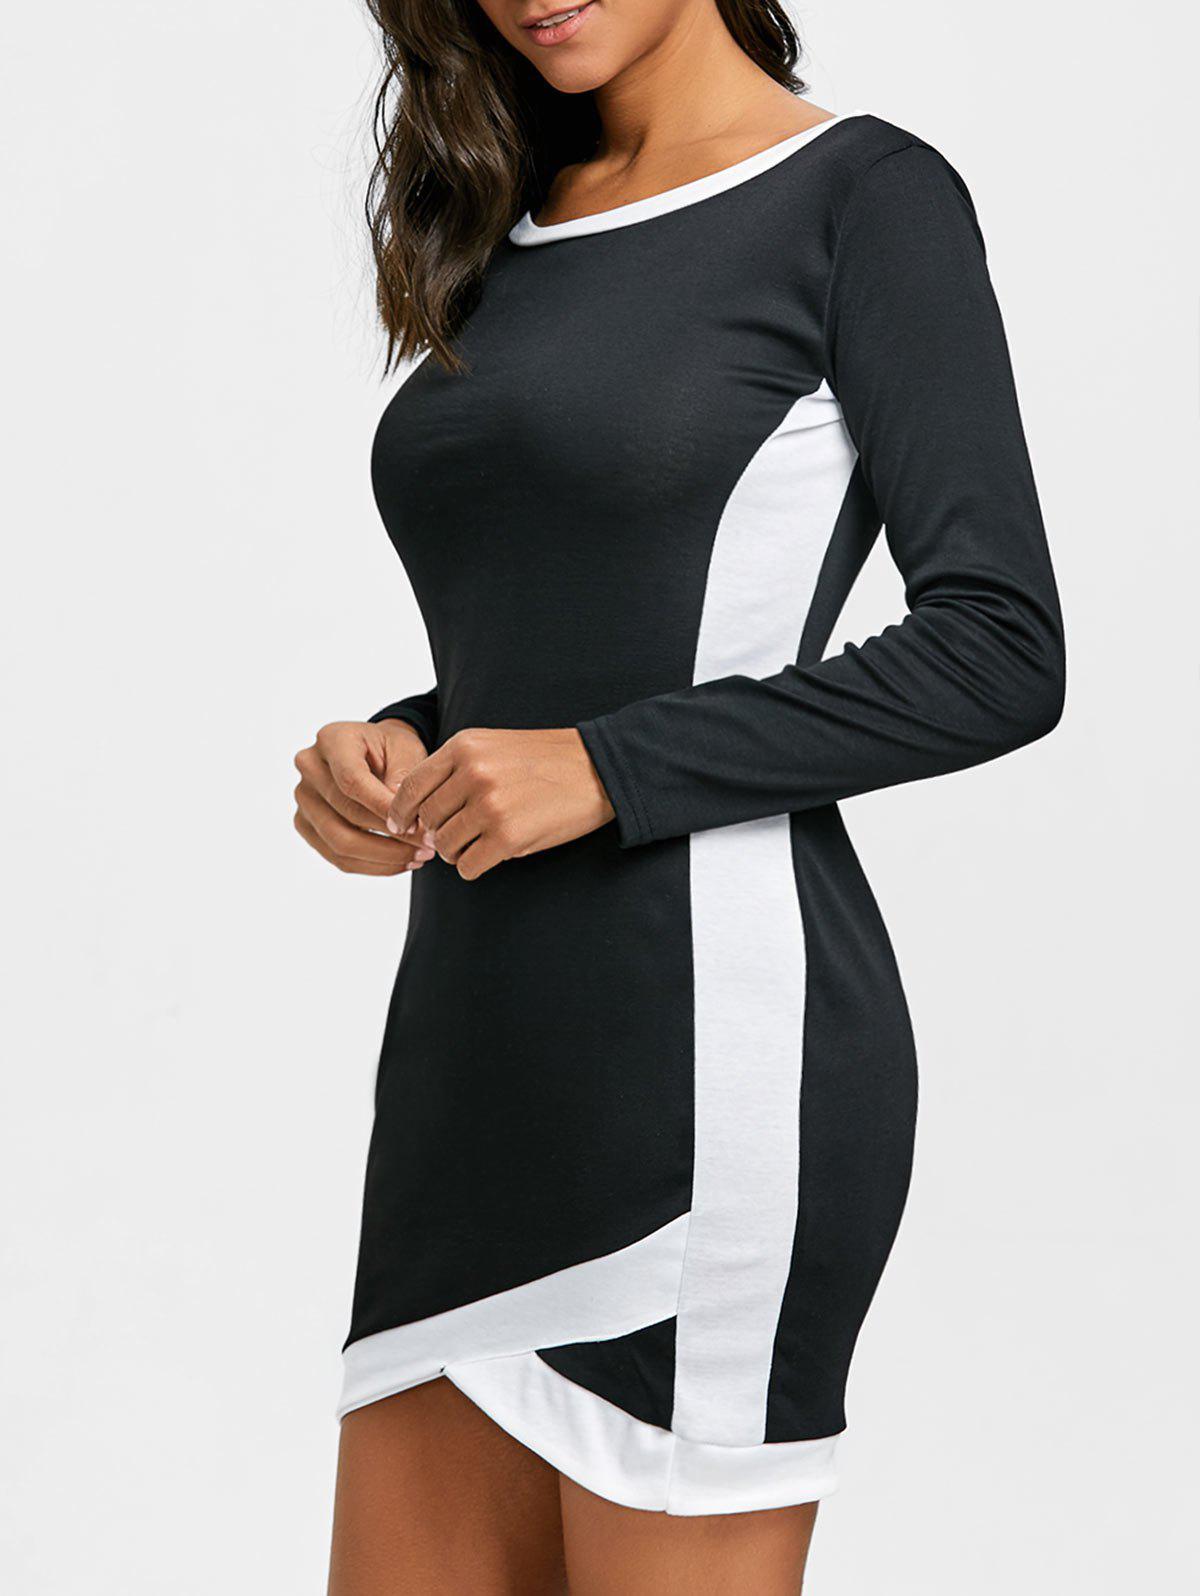 Two Tone Long Sleeve Bodycon Mini Dress - WHITE/BLACK XL